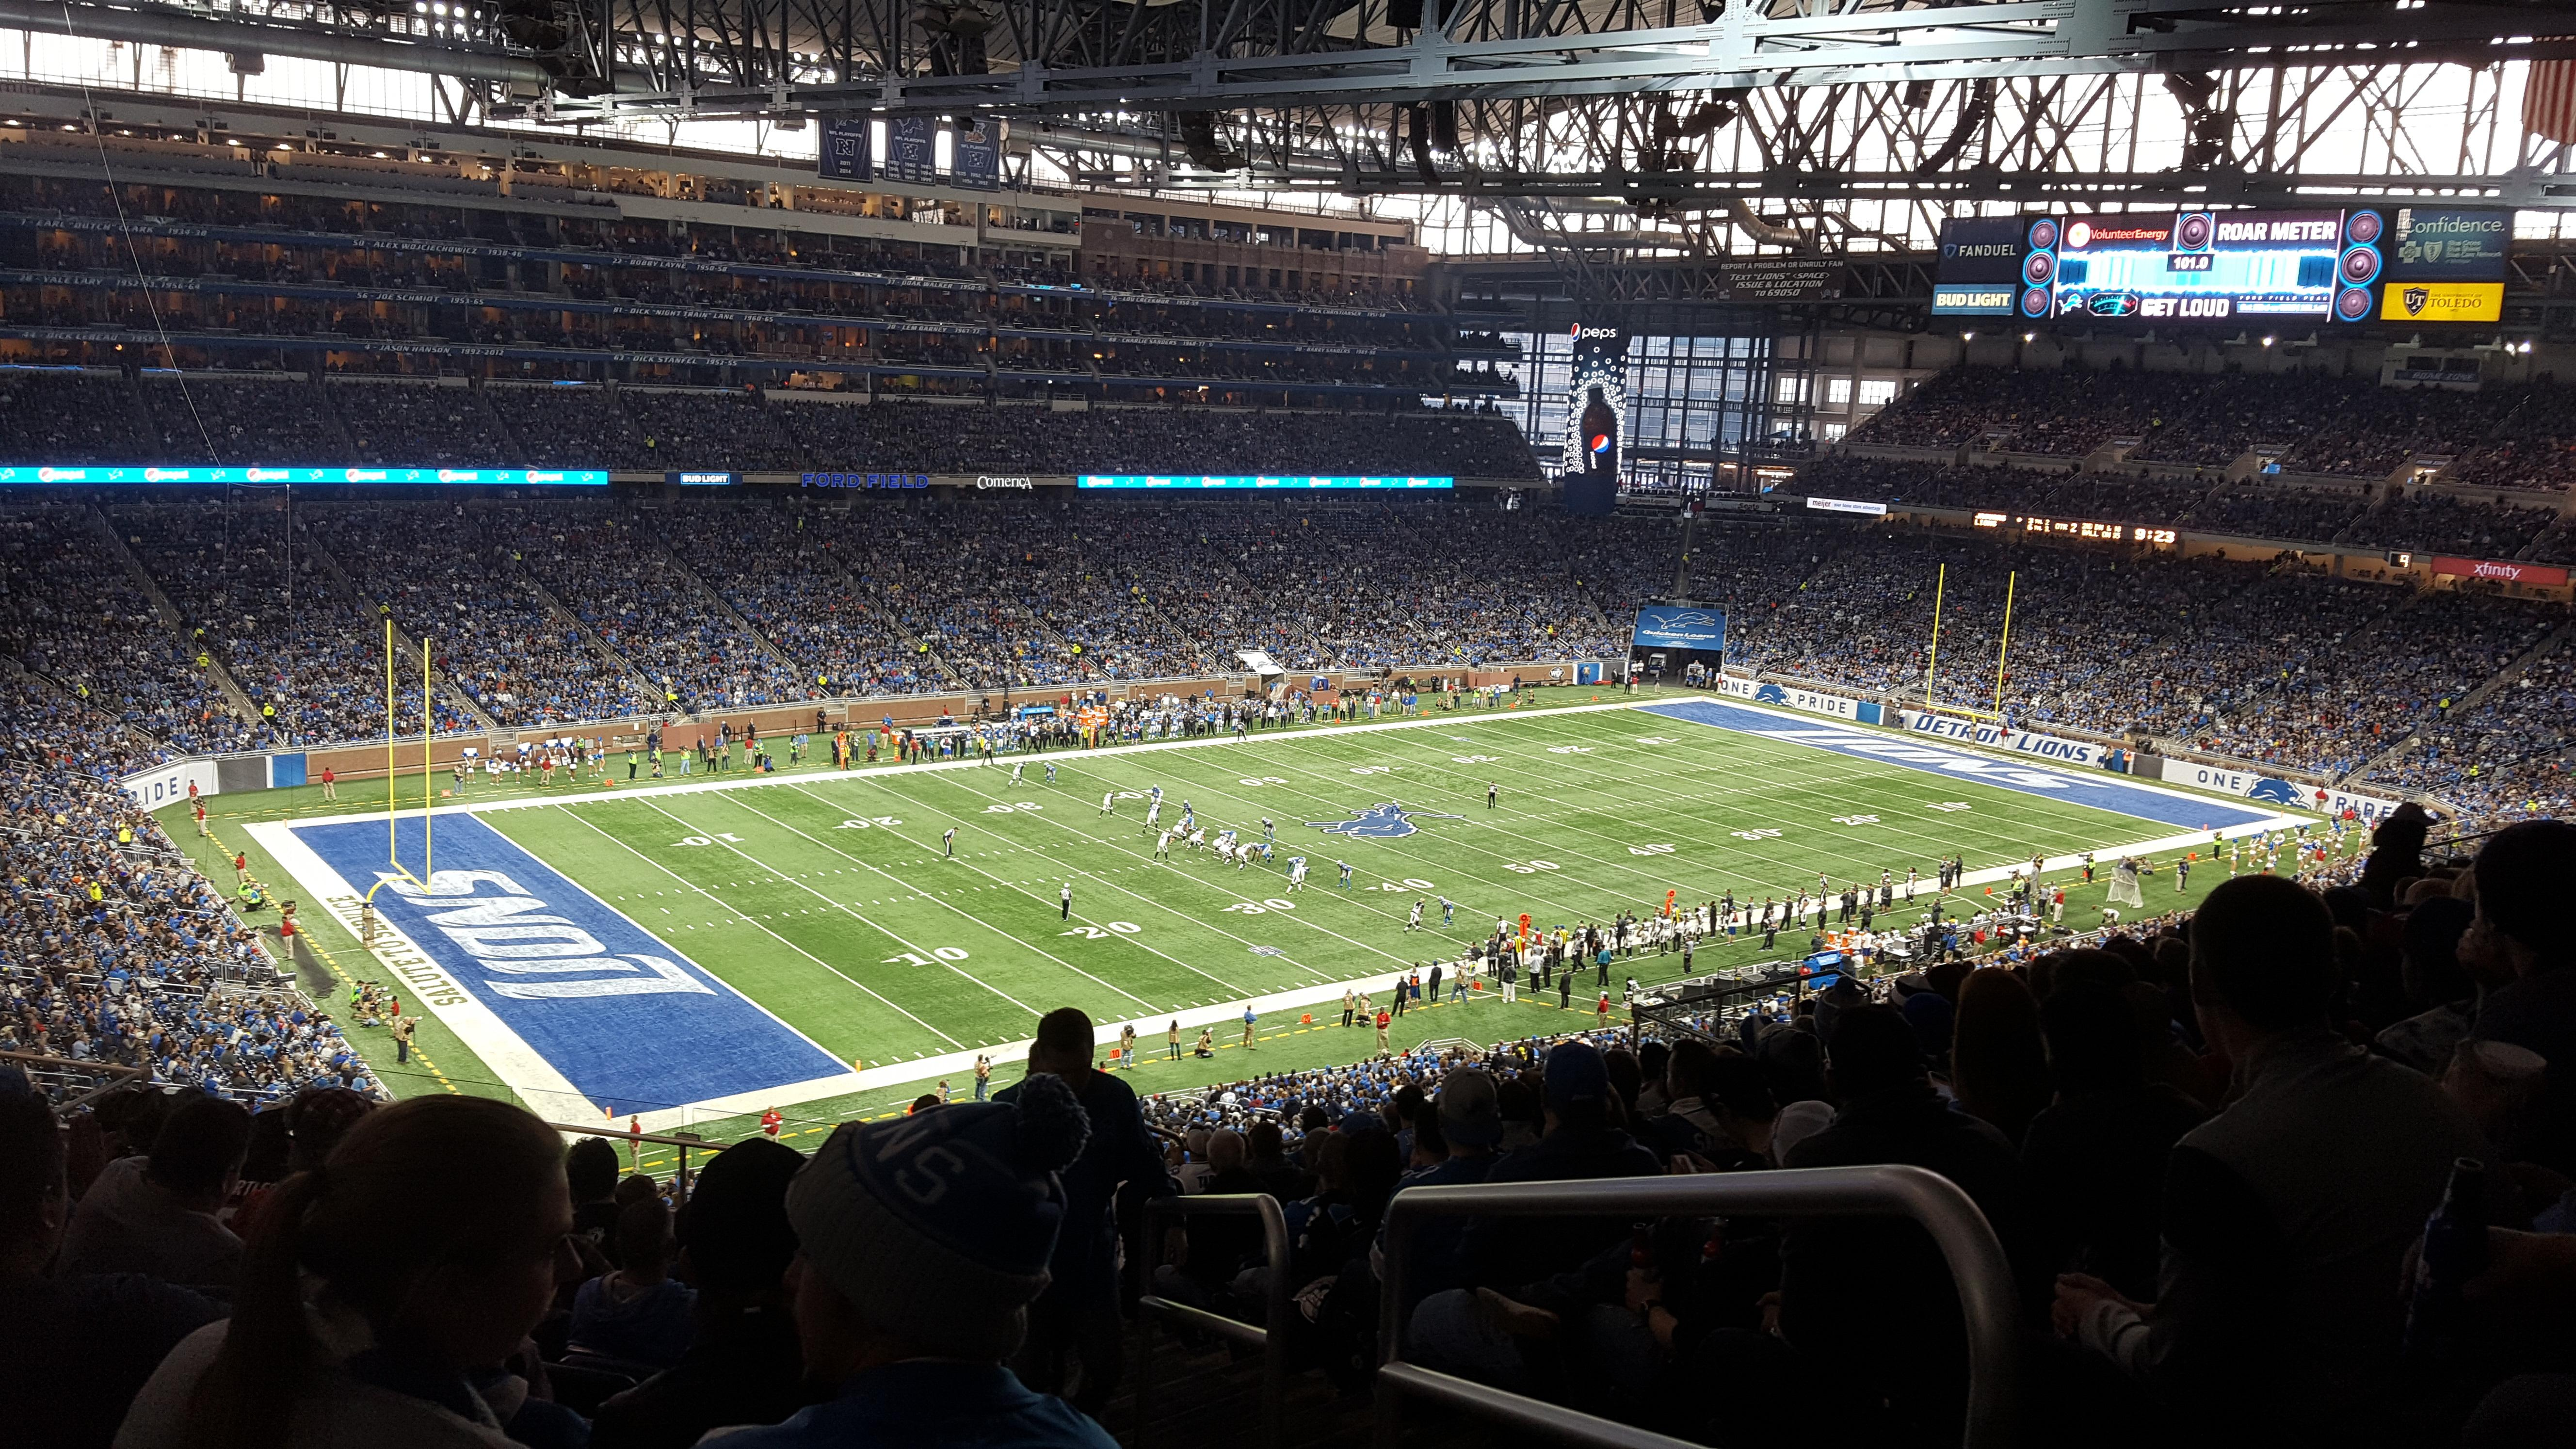 Ford Field Section 325 Row 15 Seat 23